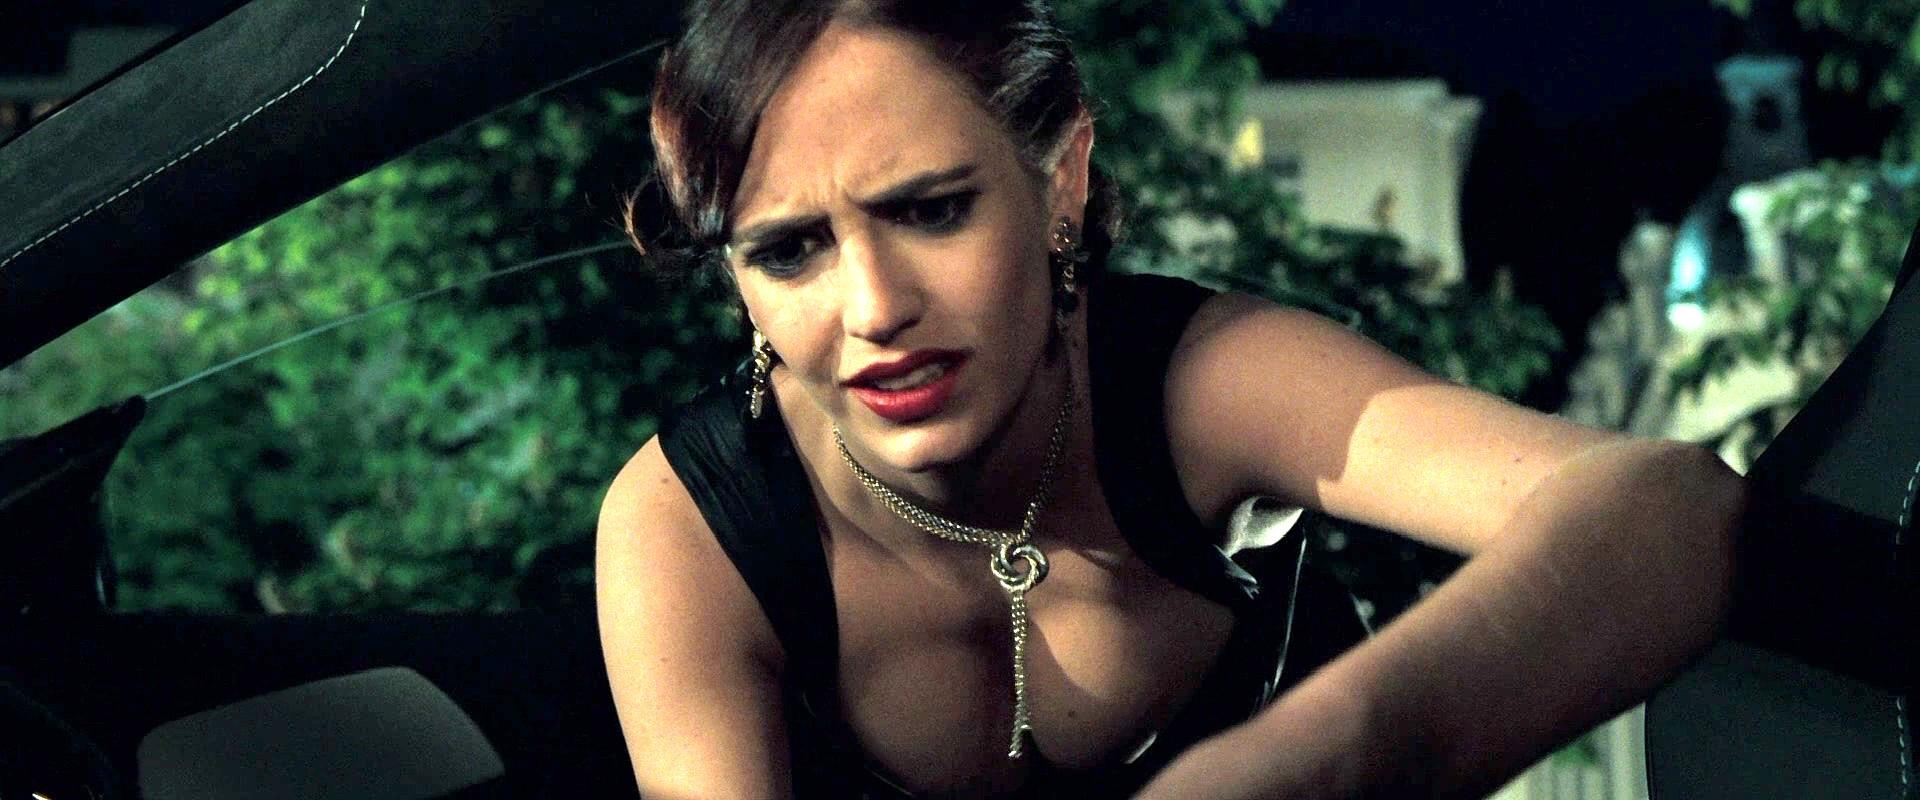 Image result for eva green casino royale